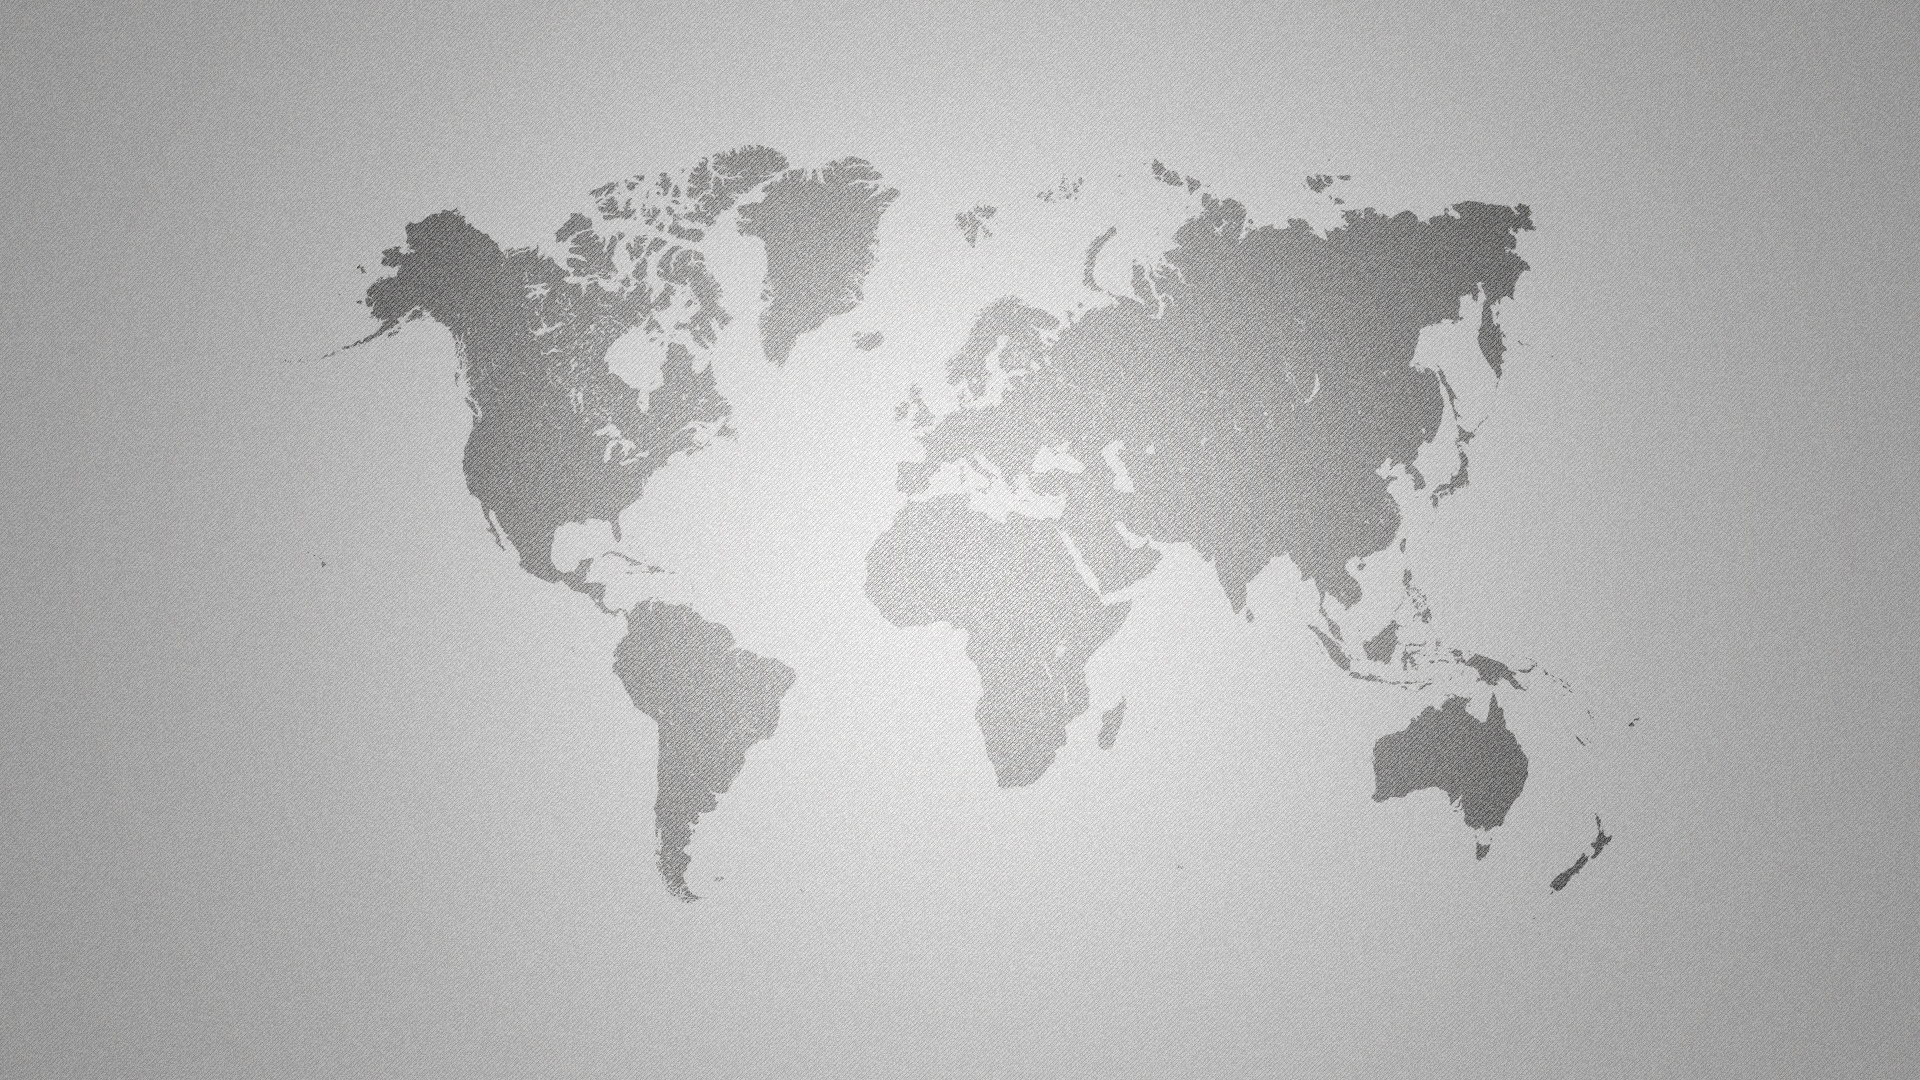 World map computer wallpaper 51297 1920x1080px world map computer wallpaper 51297 gumiabroncs Choice Image